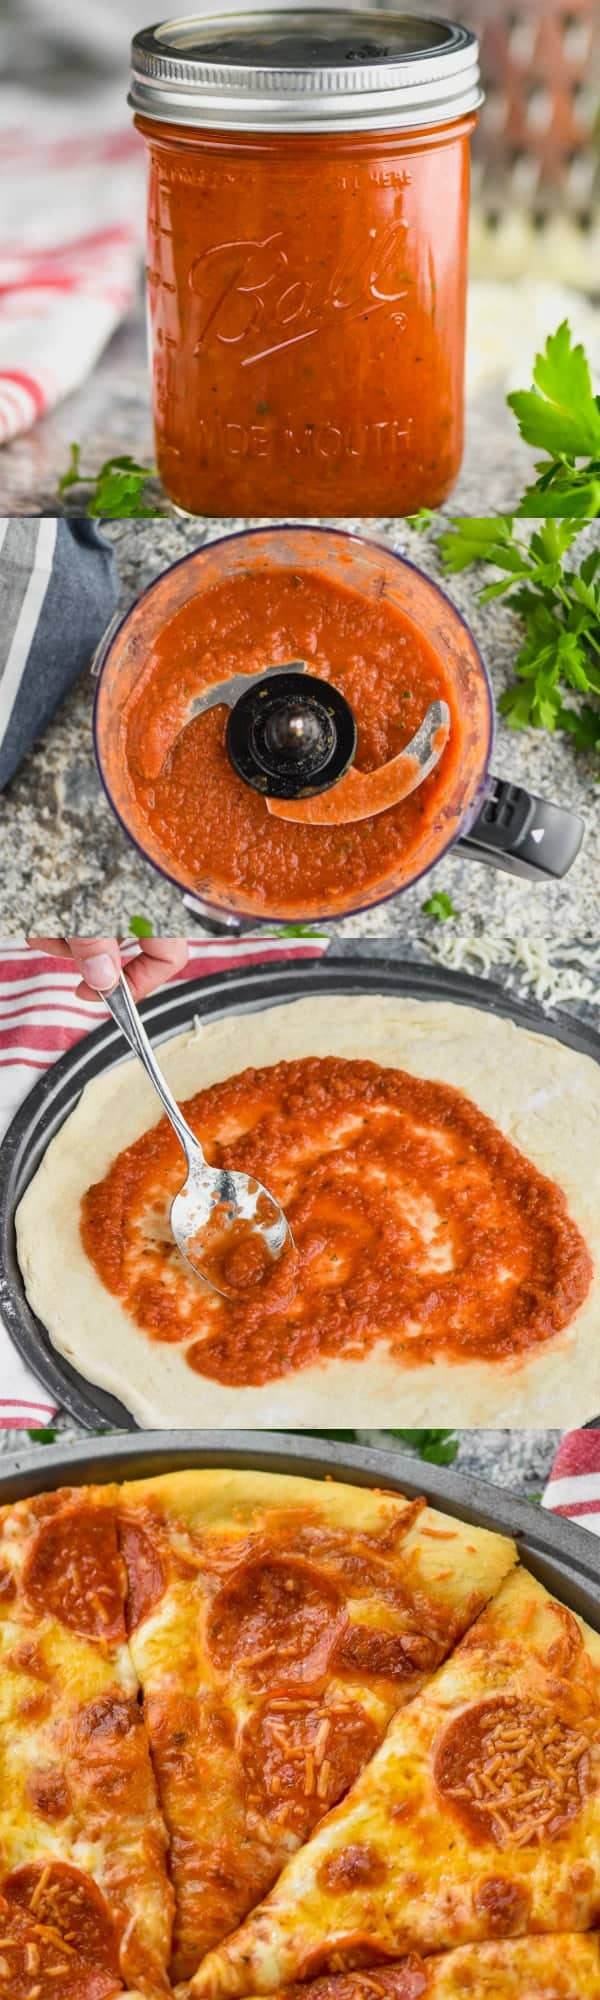 collage of photos of homemade pizza sauce